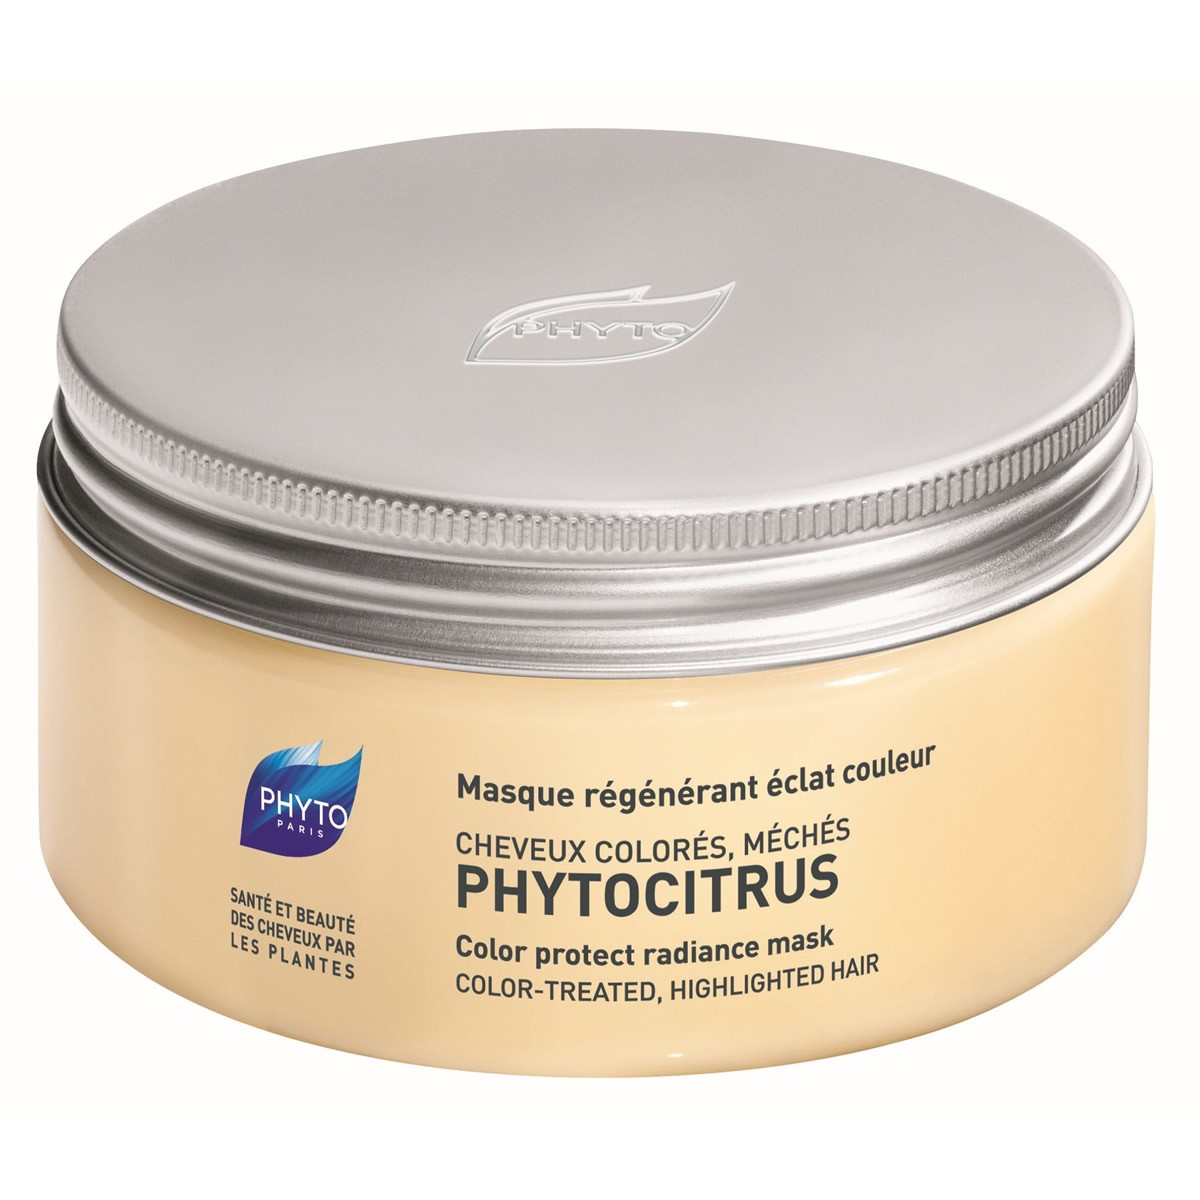 Phyto Phytocitrus Color Protect Radiance Masque